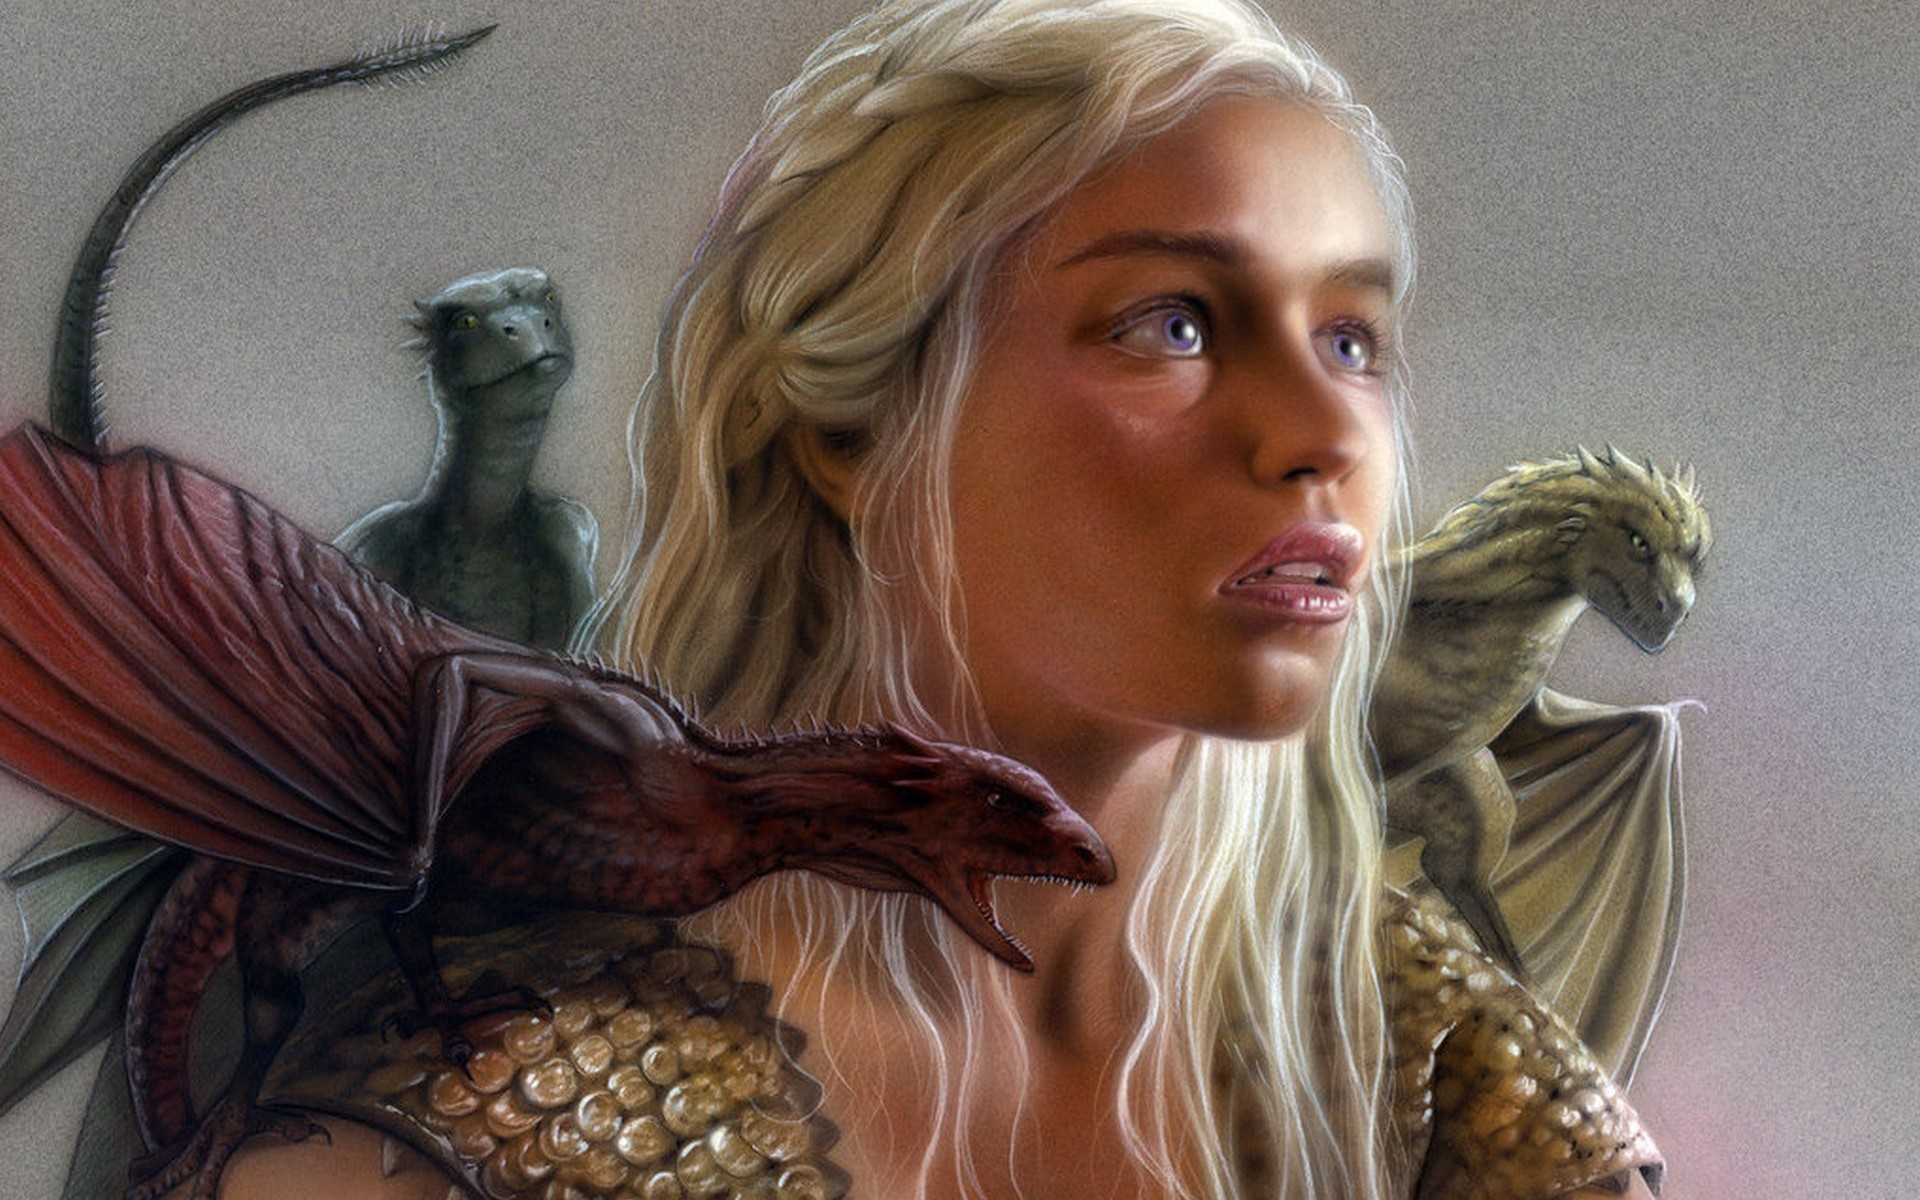 Game Of Thrones Game Of Thrones Daenerys Targaryen - Game Of Thrones Daenerys With Dragons - HD Wallpaper